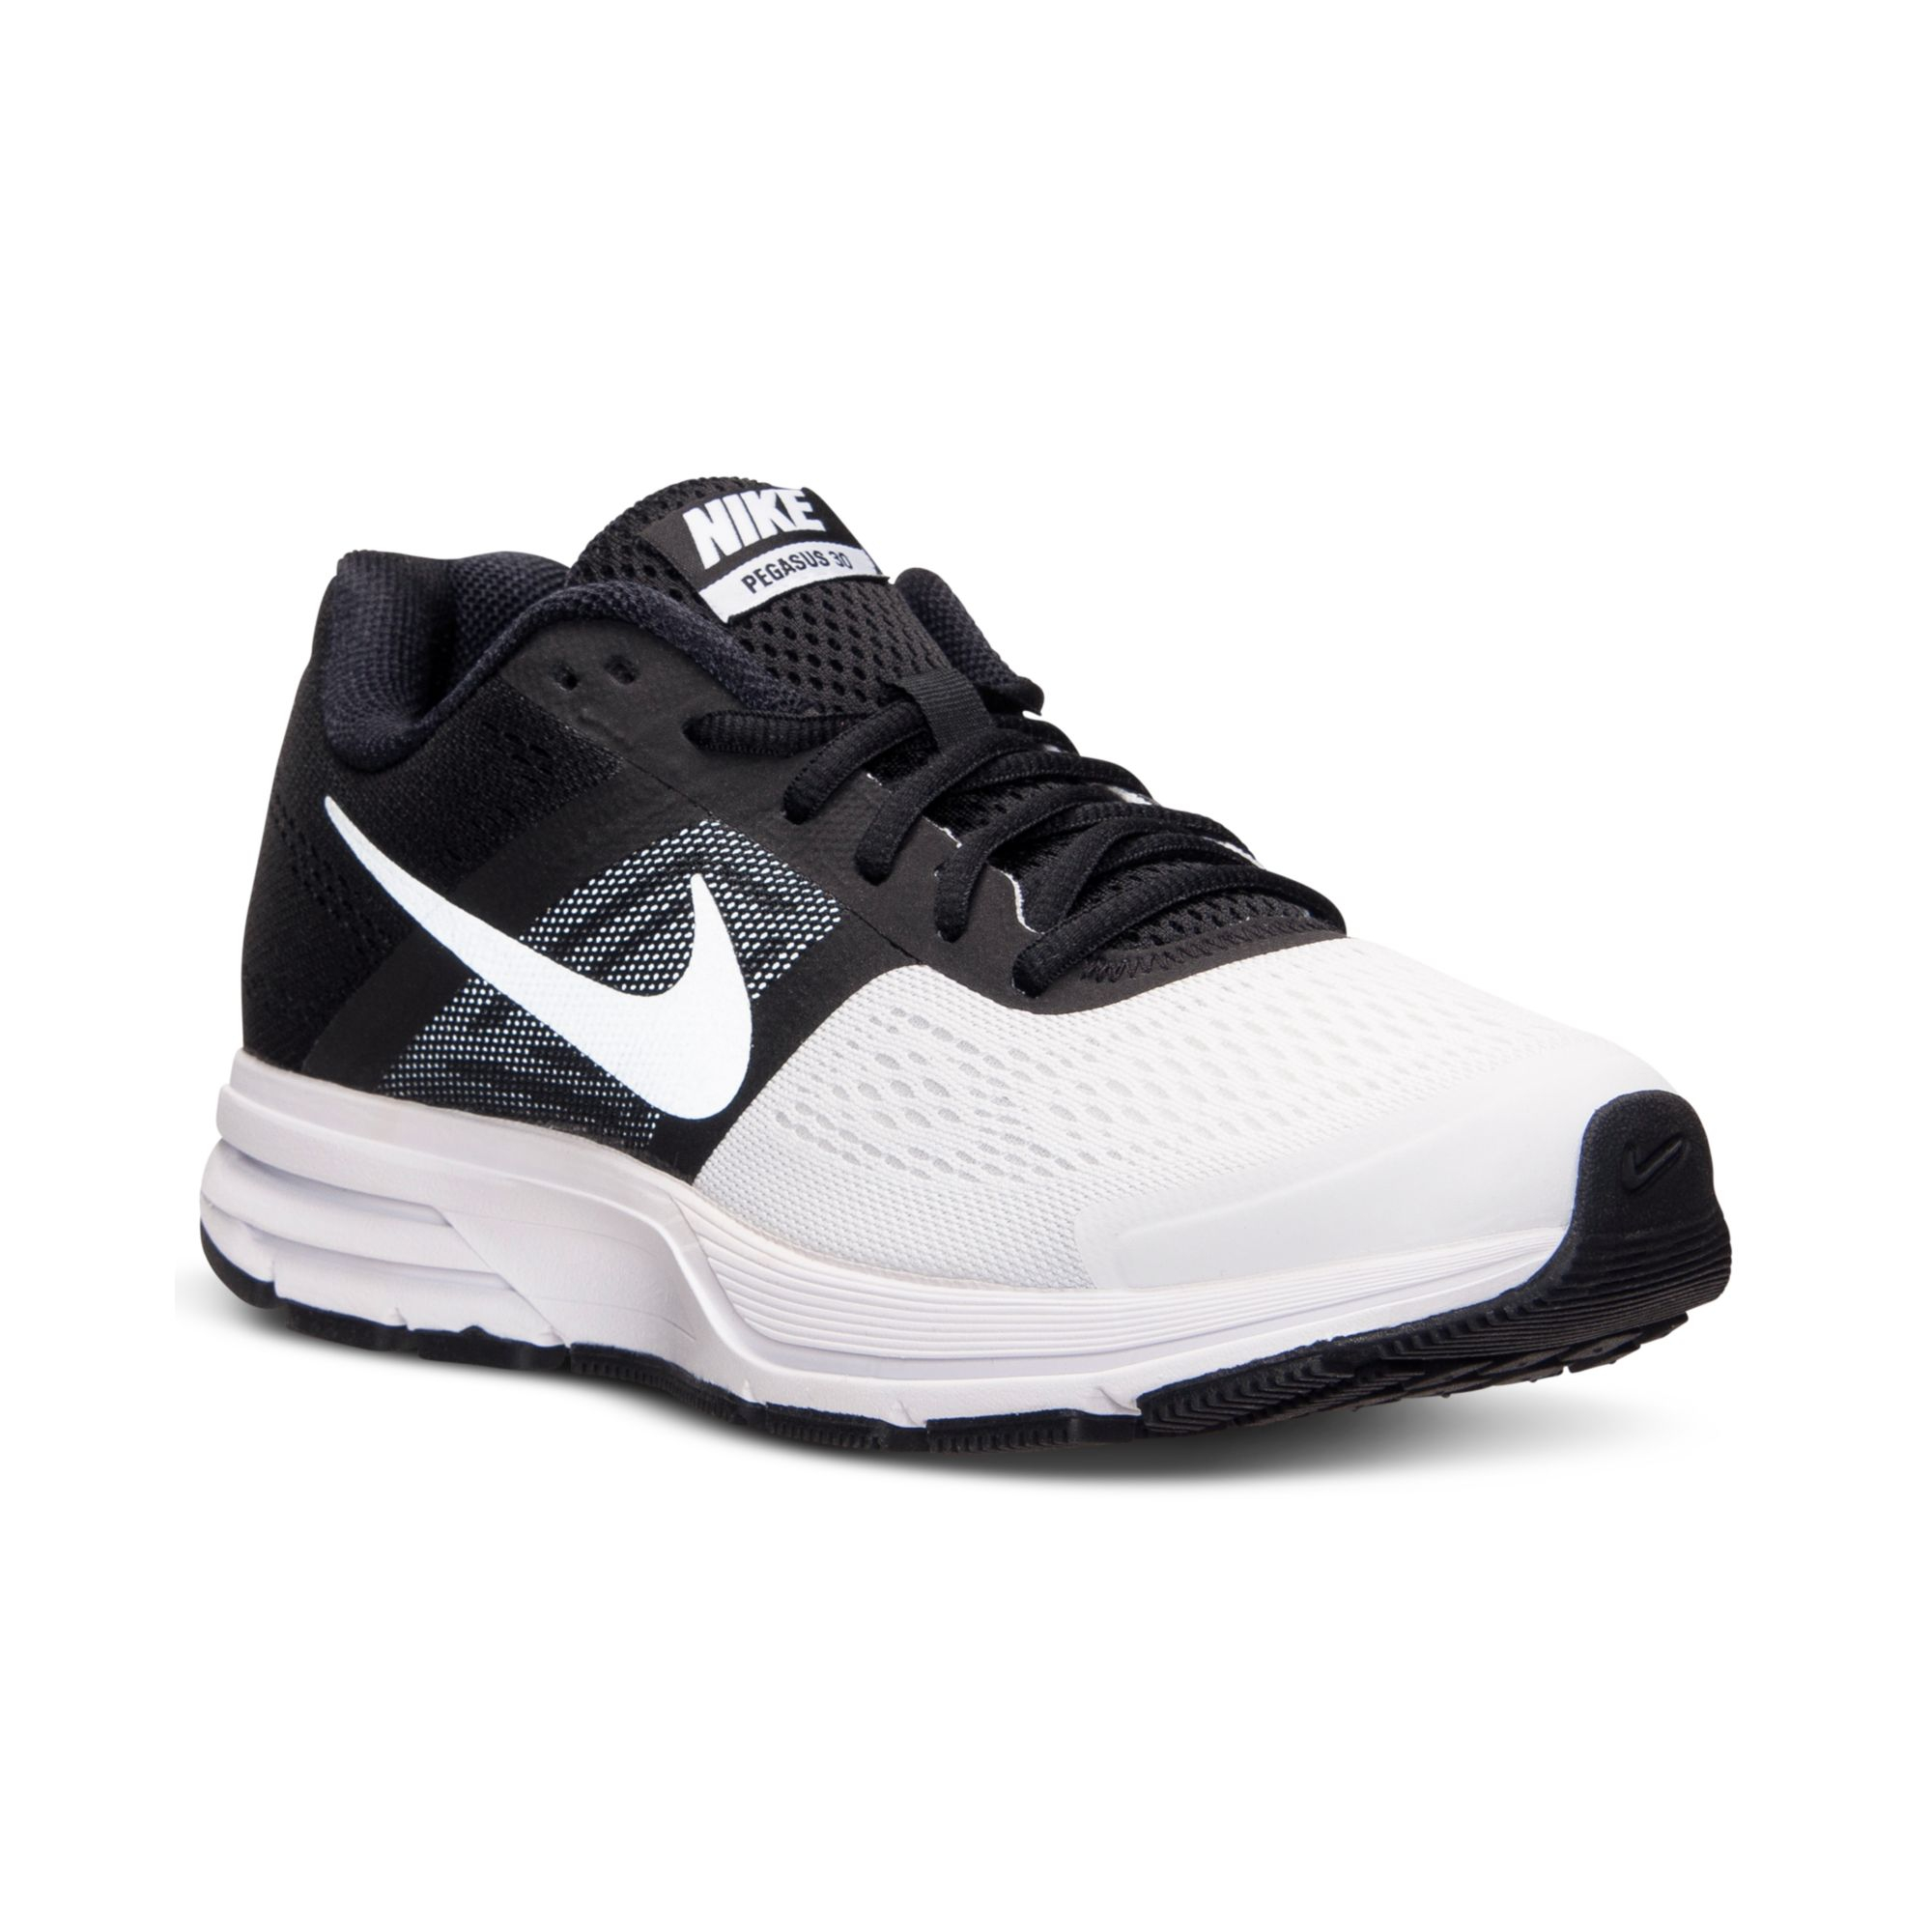 37907c24a6dd Lyst - Nike Mens Air Pegasus 30 Running Sneakers From Finish Line in ...